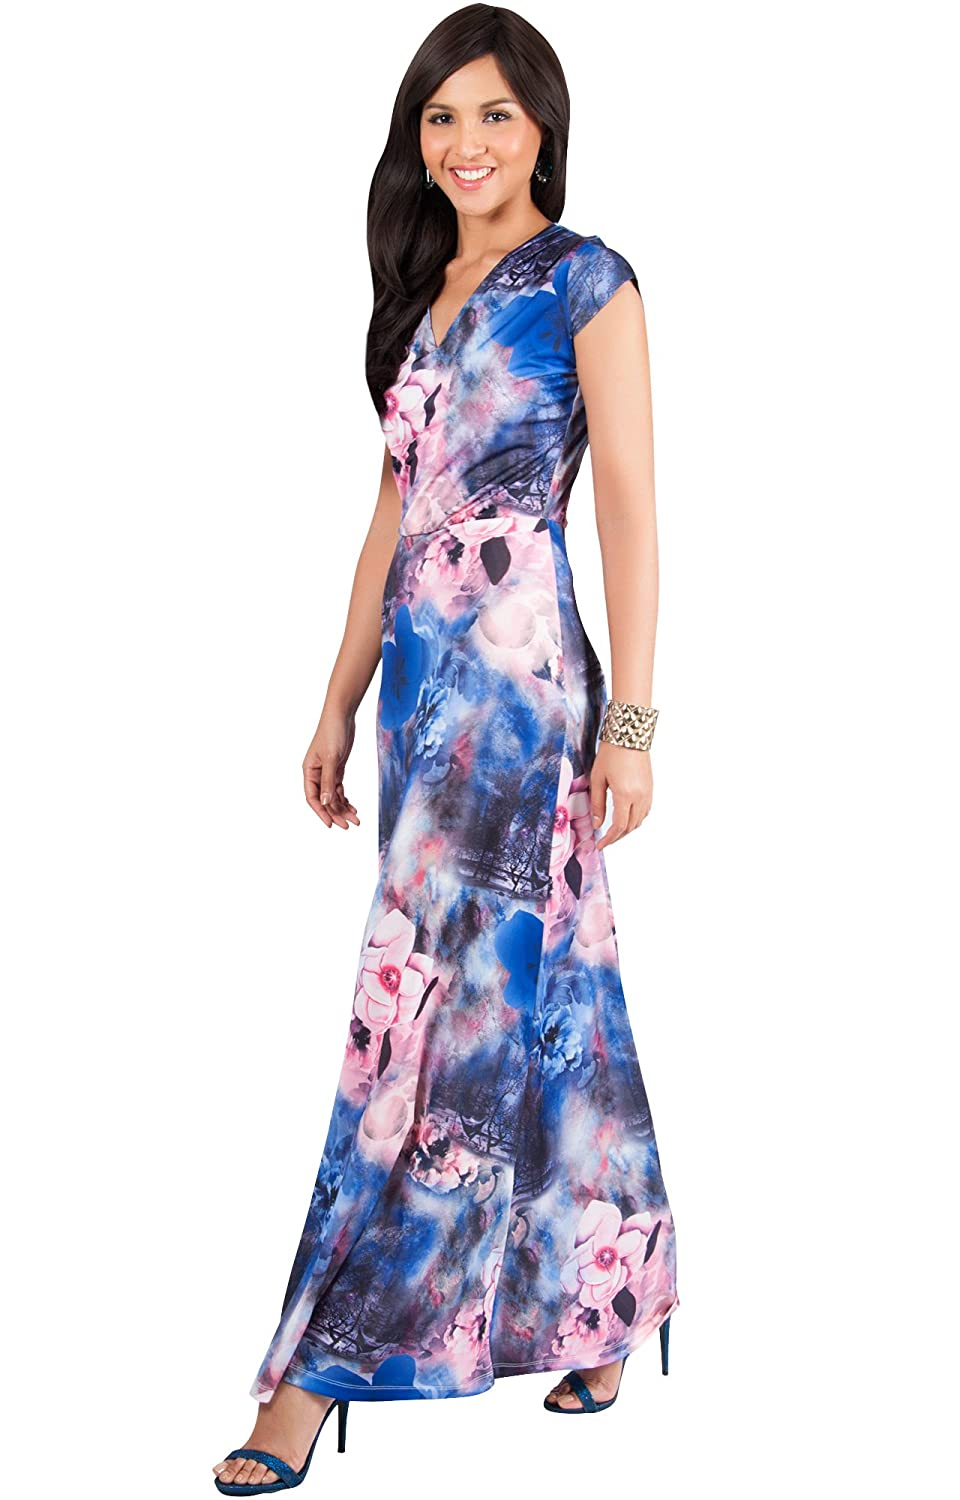 Royal bluee and Pink Koh Koh Womens Long Cap Sleeve Floral Print VNeck Boho Flowy Summer Maxi Dress